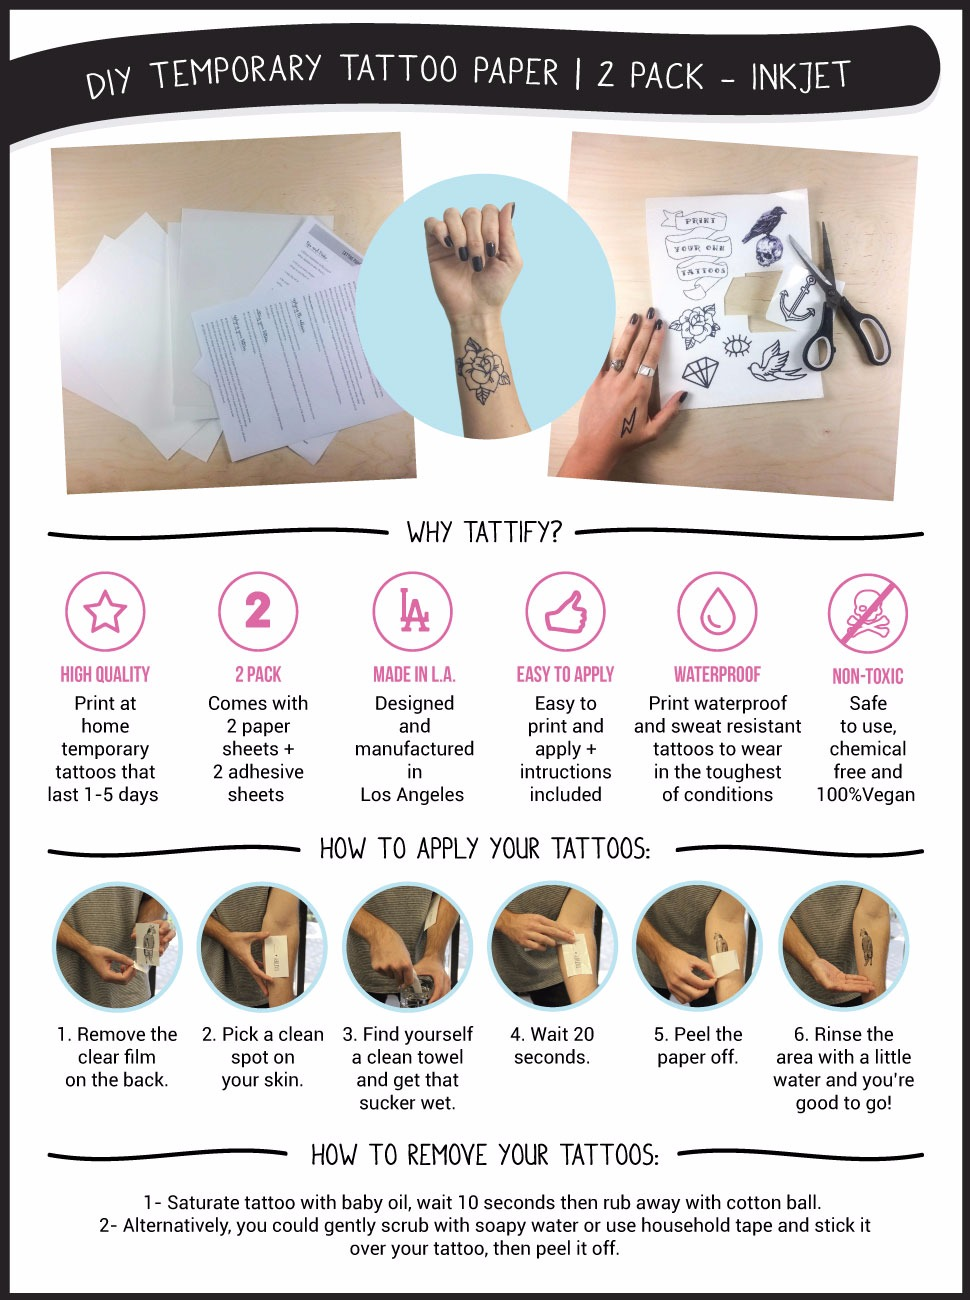 Tattify diy temporary tattoo paper 2 pack for for Tattoo transfer paper